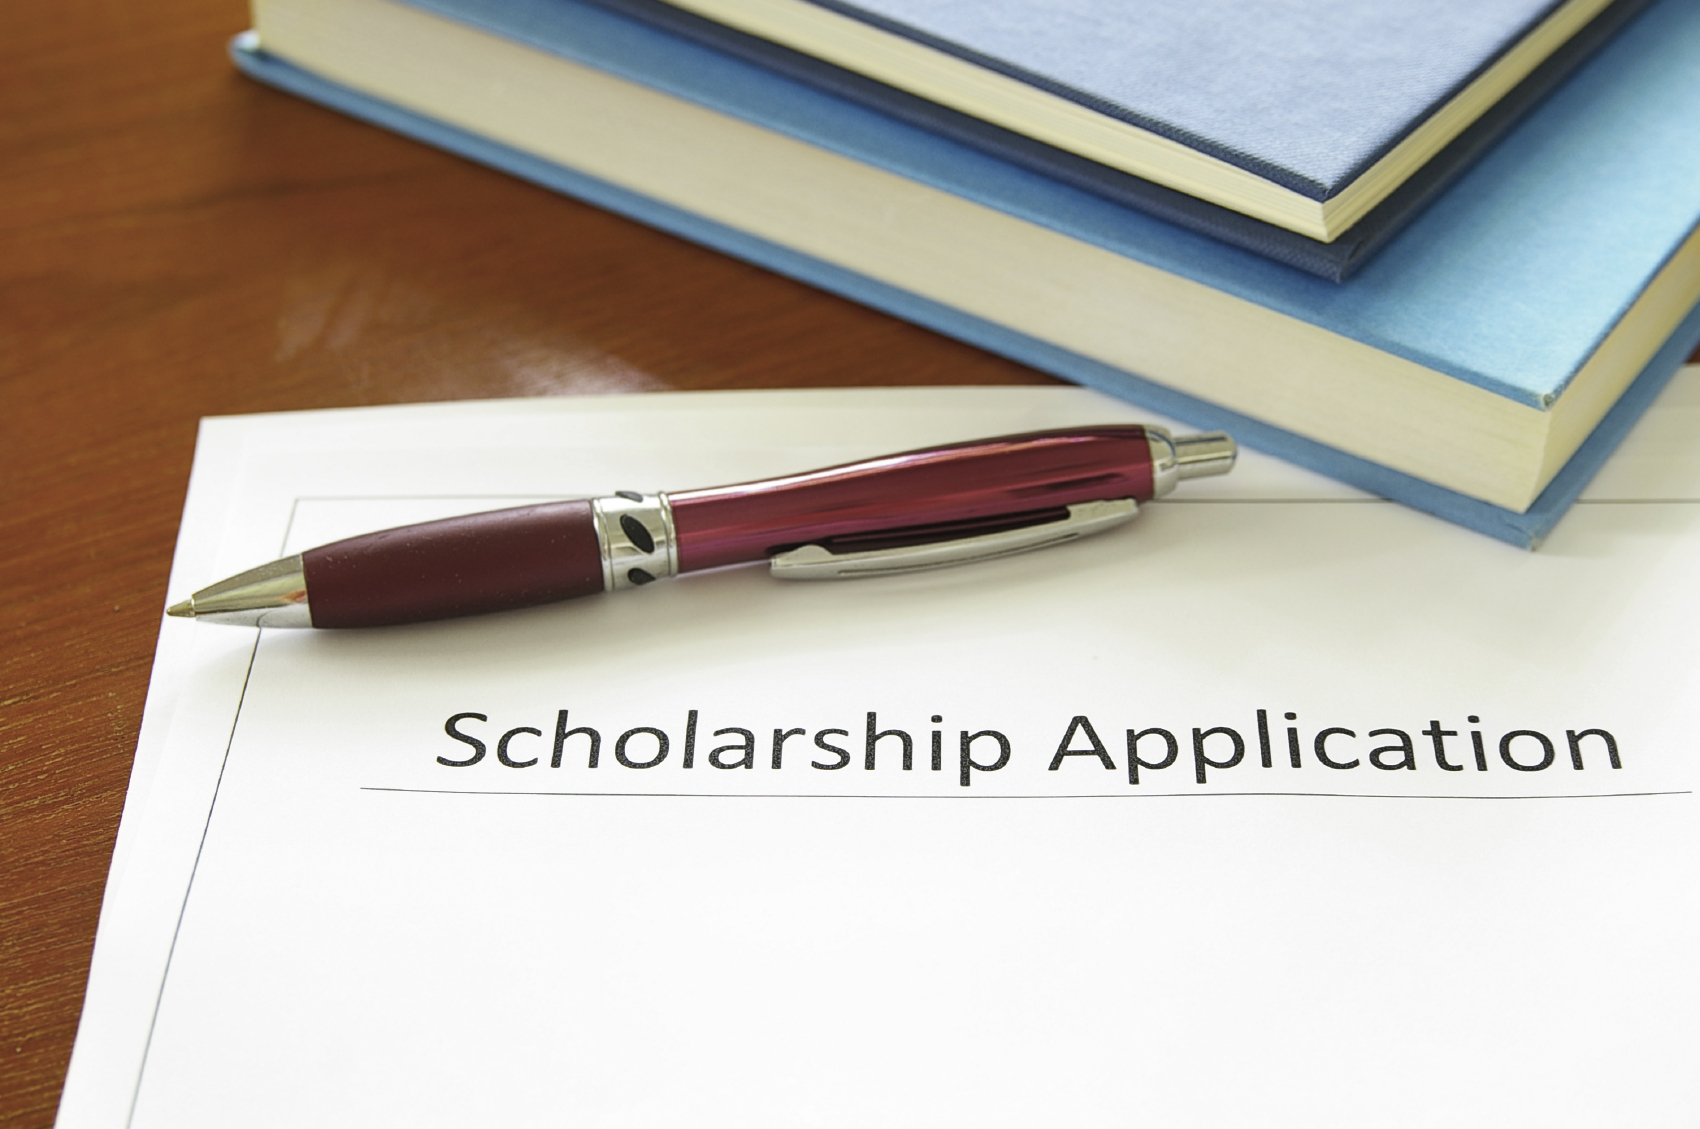 The $1,000 scholarship is offered each year for graduate students who are pursuing a career in pharmacy.